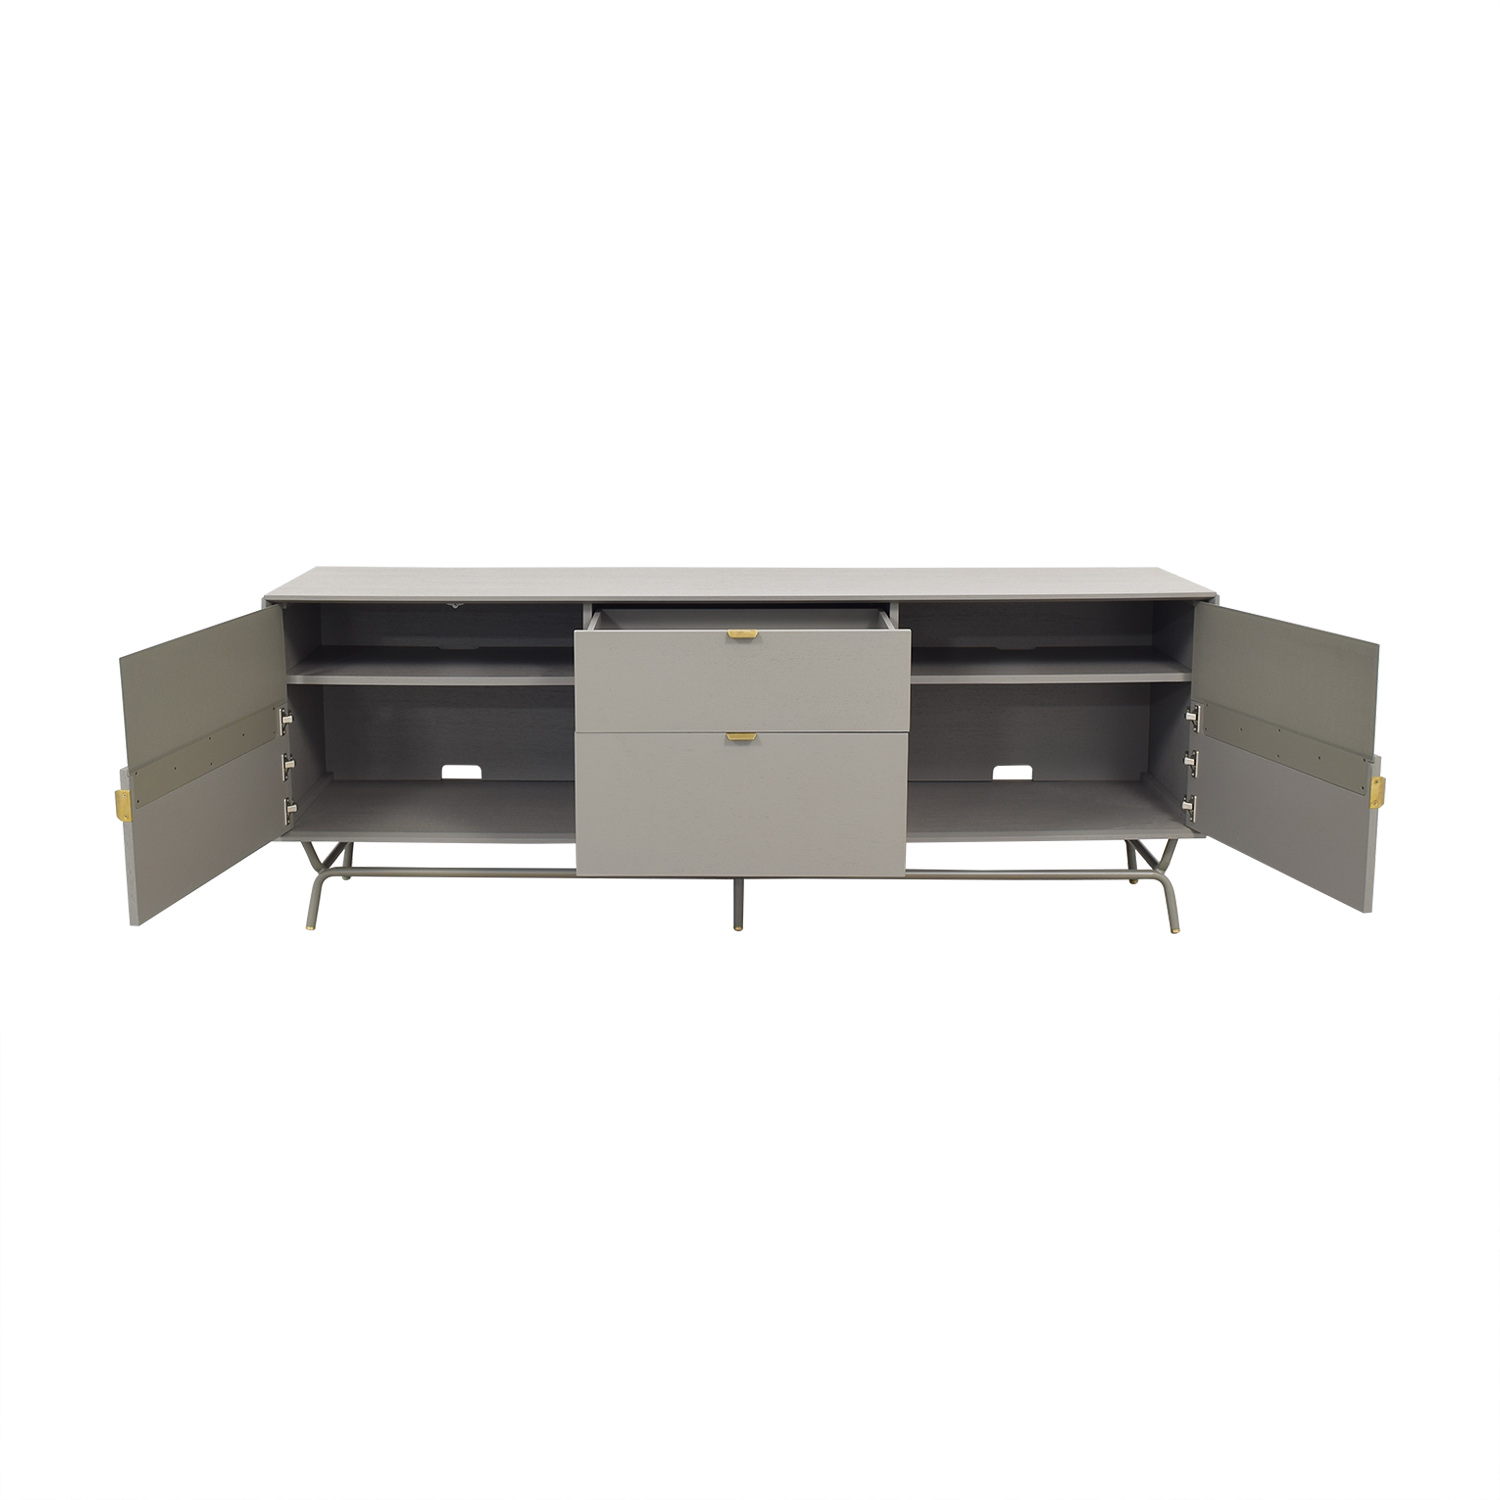 Blu Dot Dang 2 Door / 2 Drawer Console sale